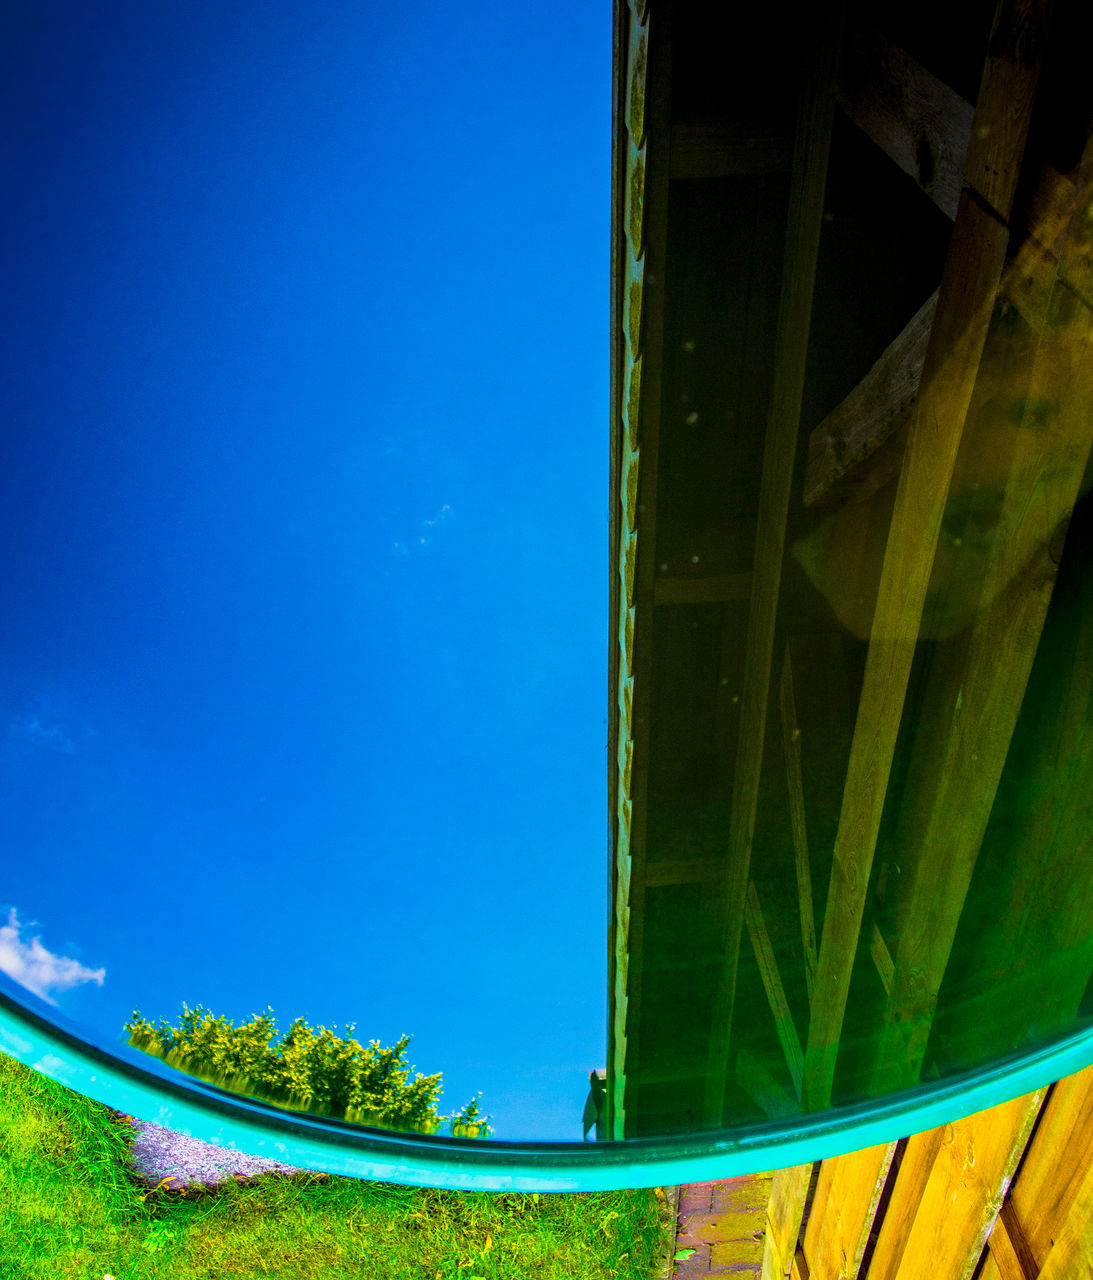 blue, green color, day, outdoors, sky, nature, no people, grass, growth, beauty in nature, architecture, tree